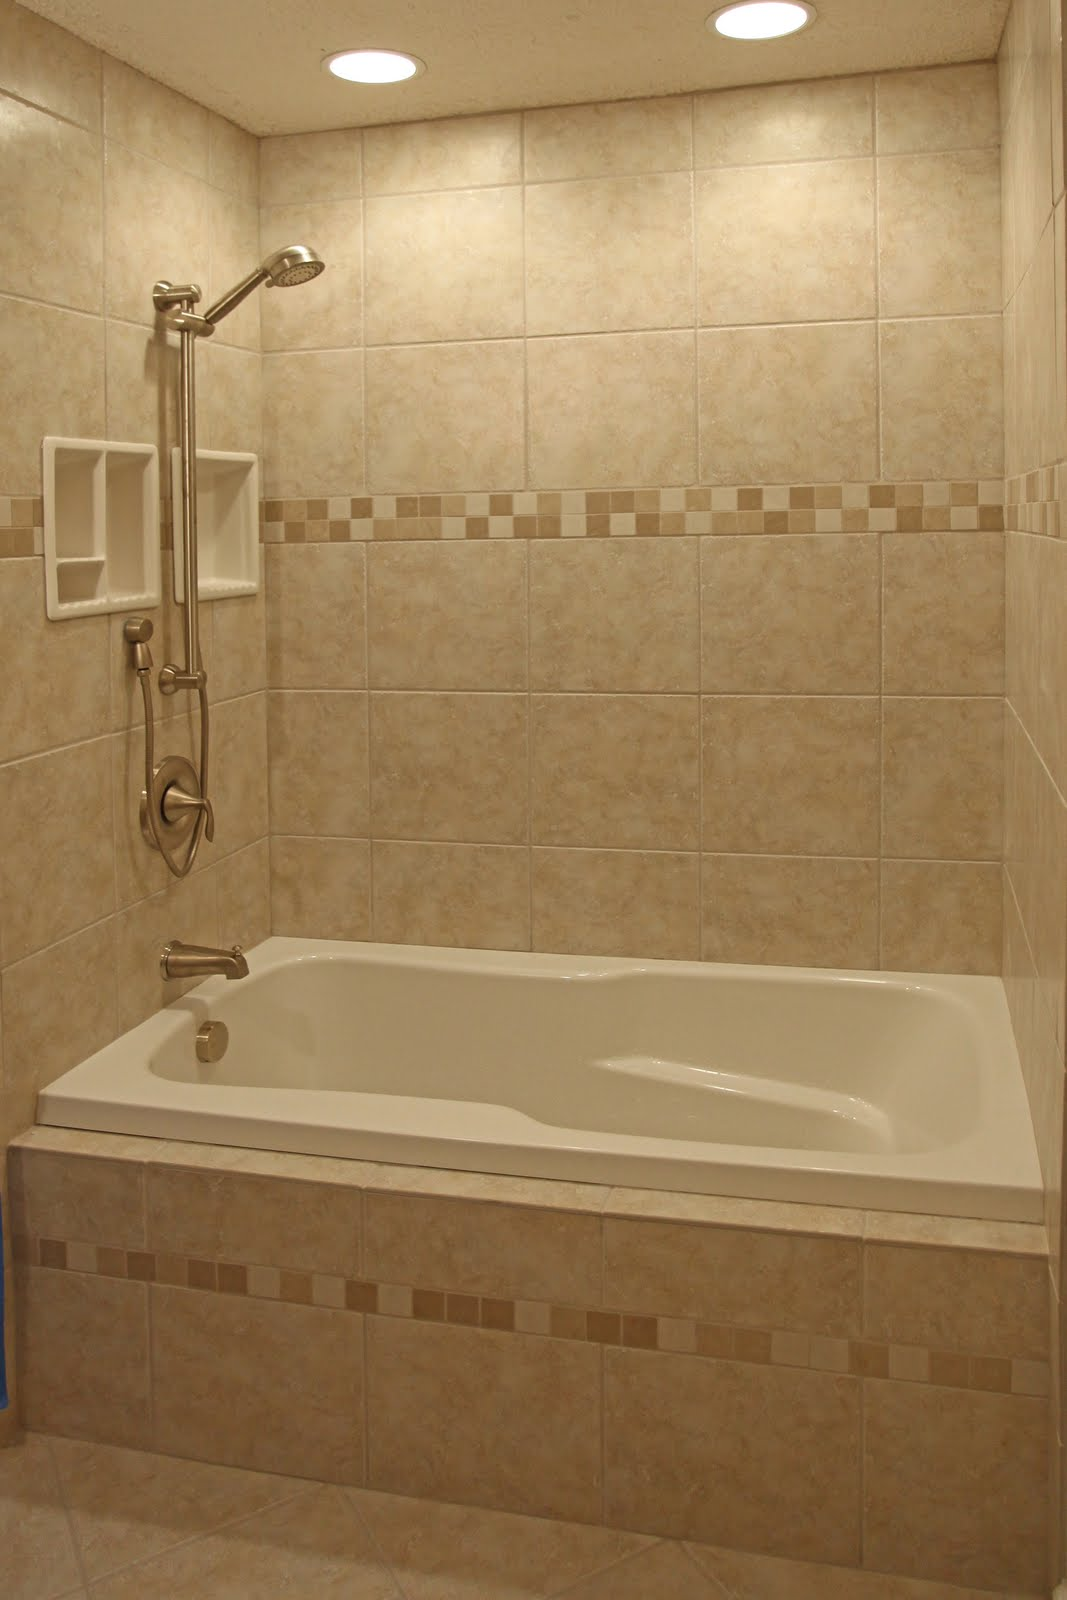 bathroom designs and tiles mallow photo - 3